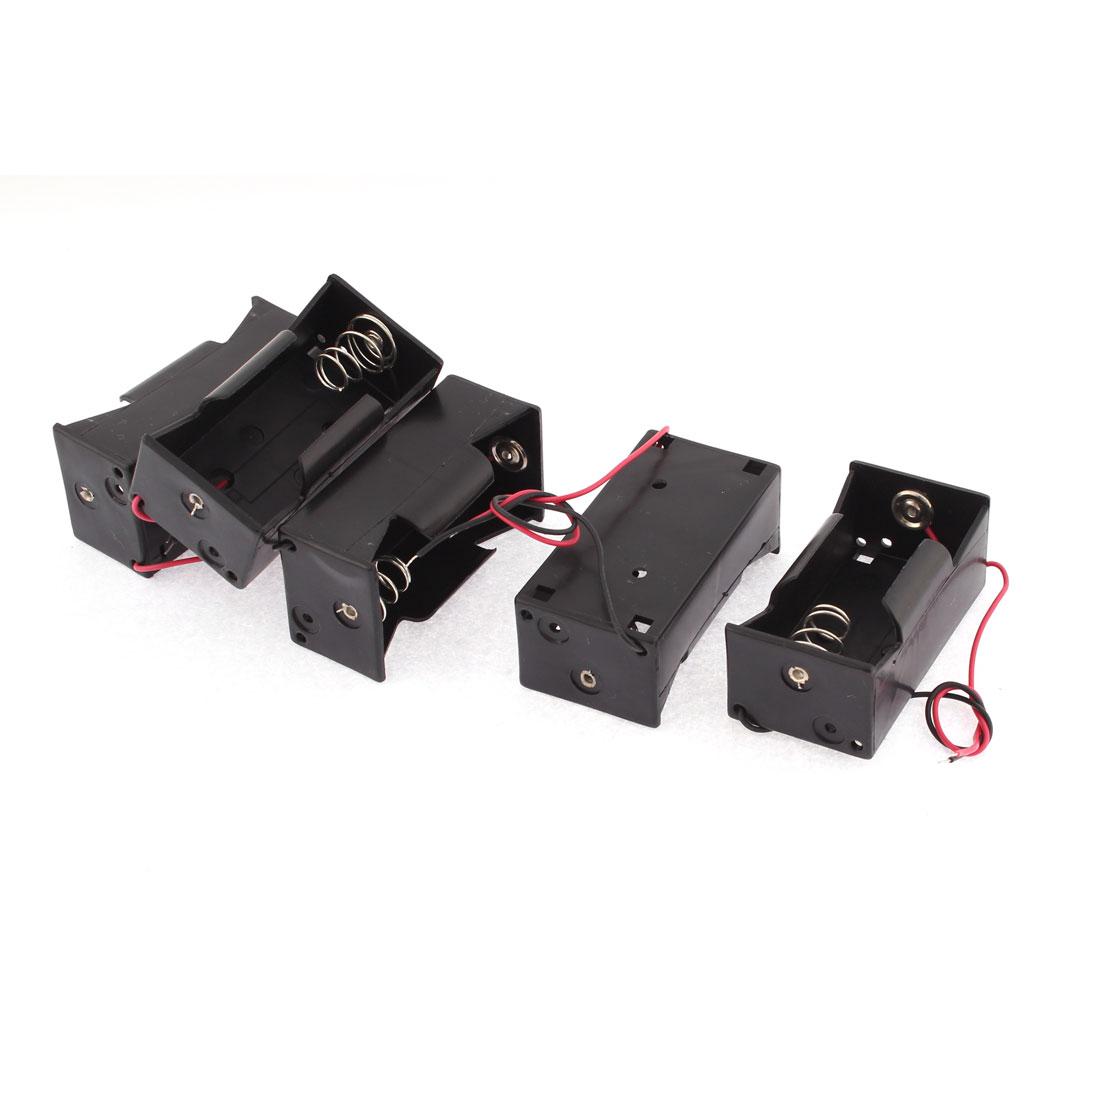 5 Pcs Plastic 2 Wires 1 x 1.5V Size D Battery Case Holder Storage